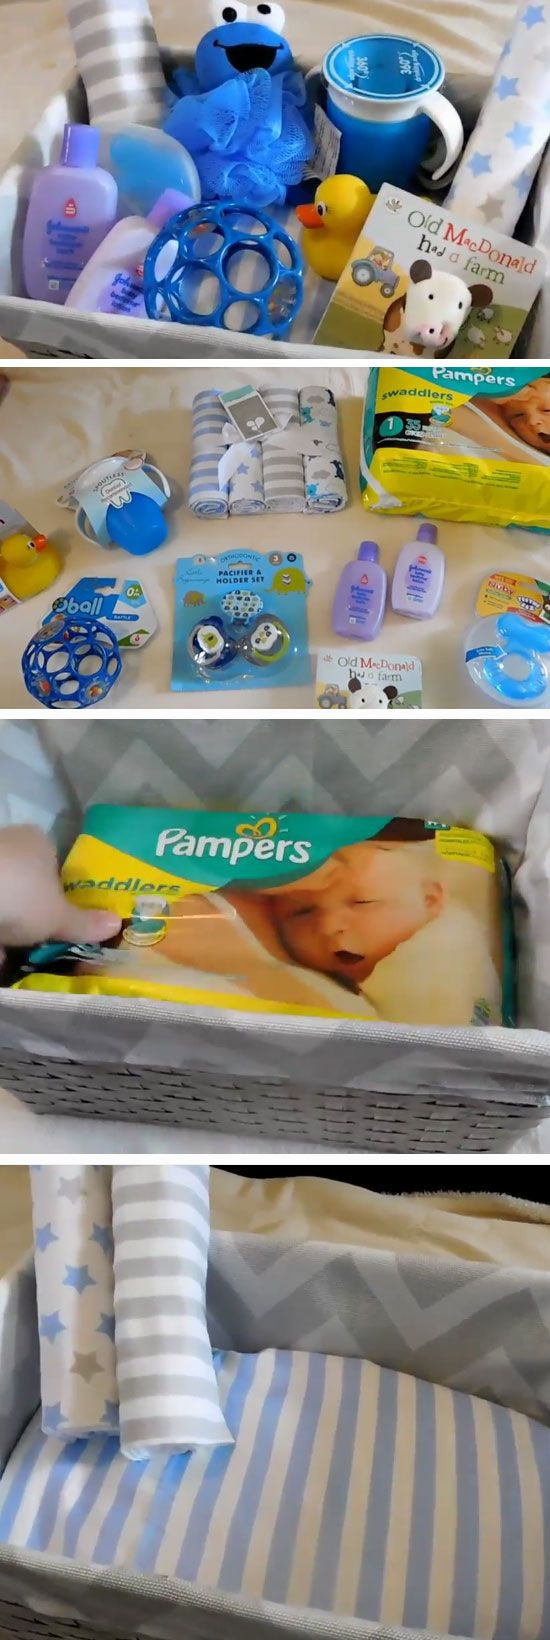 Best ideas about DIY Baby Shower Gifts For Boy . Save or Pin Best 25 Baby t baskets ideas on Pinterest Now.